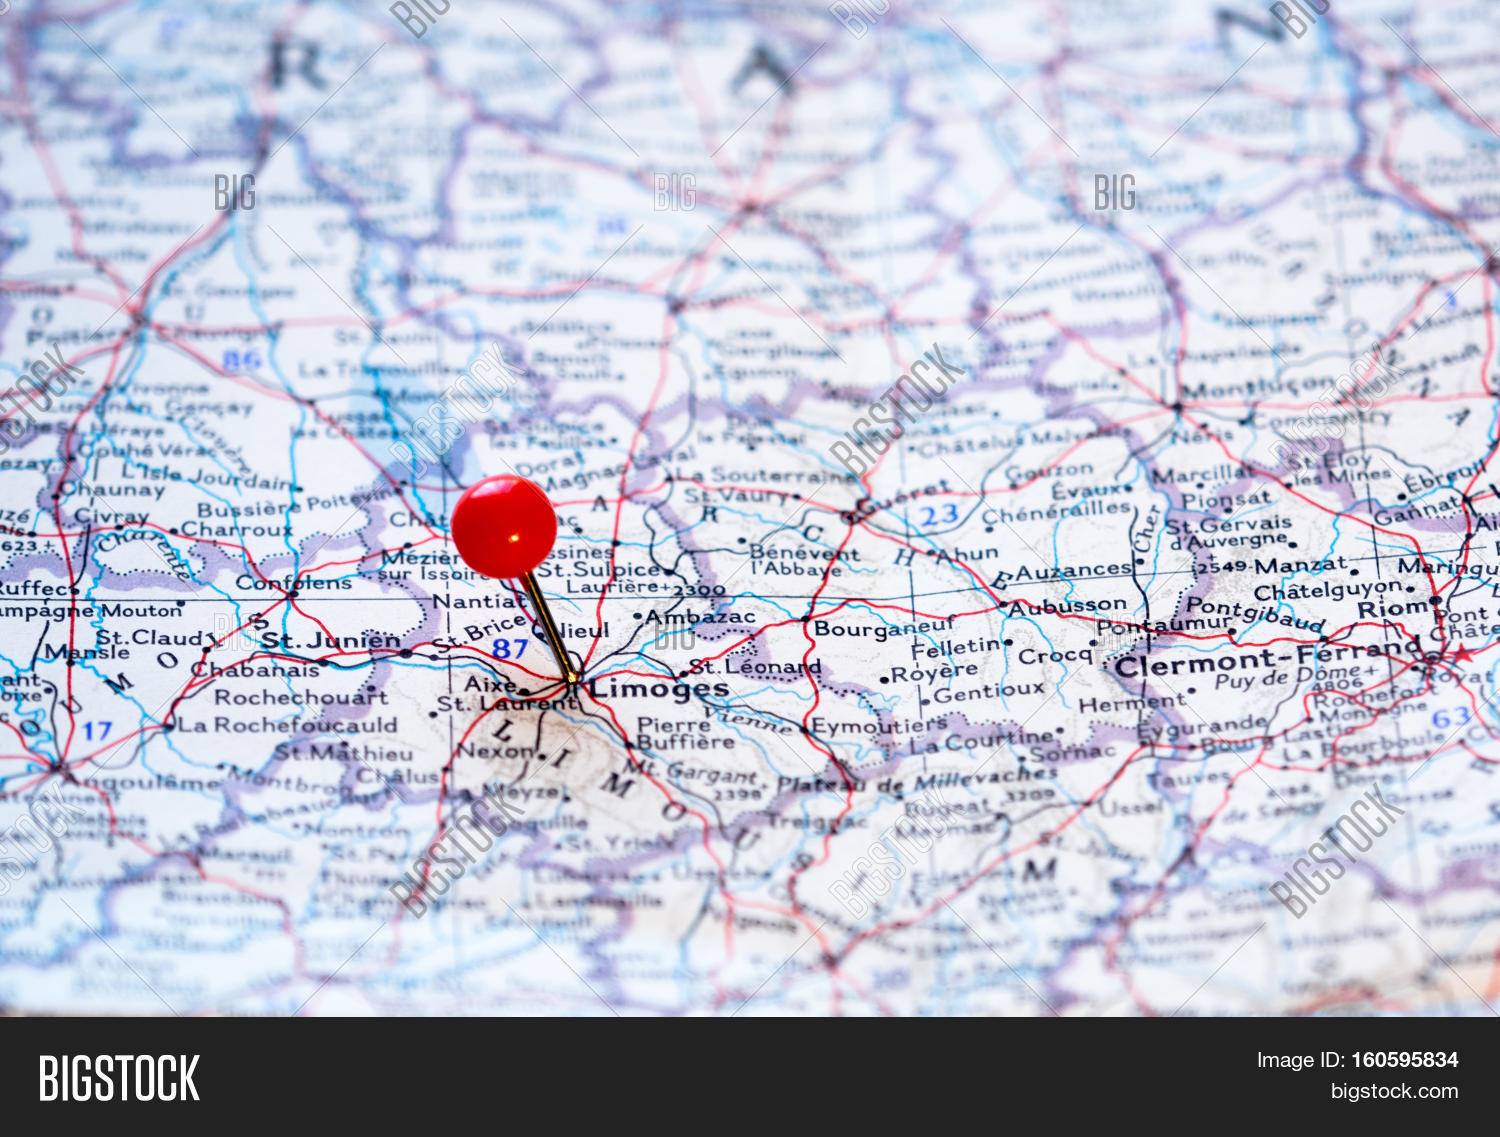 Limoges France Map.Limoges France Pinned Image Photo Free Trial Bigstock